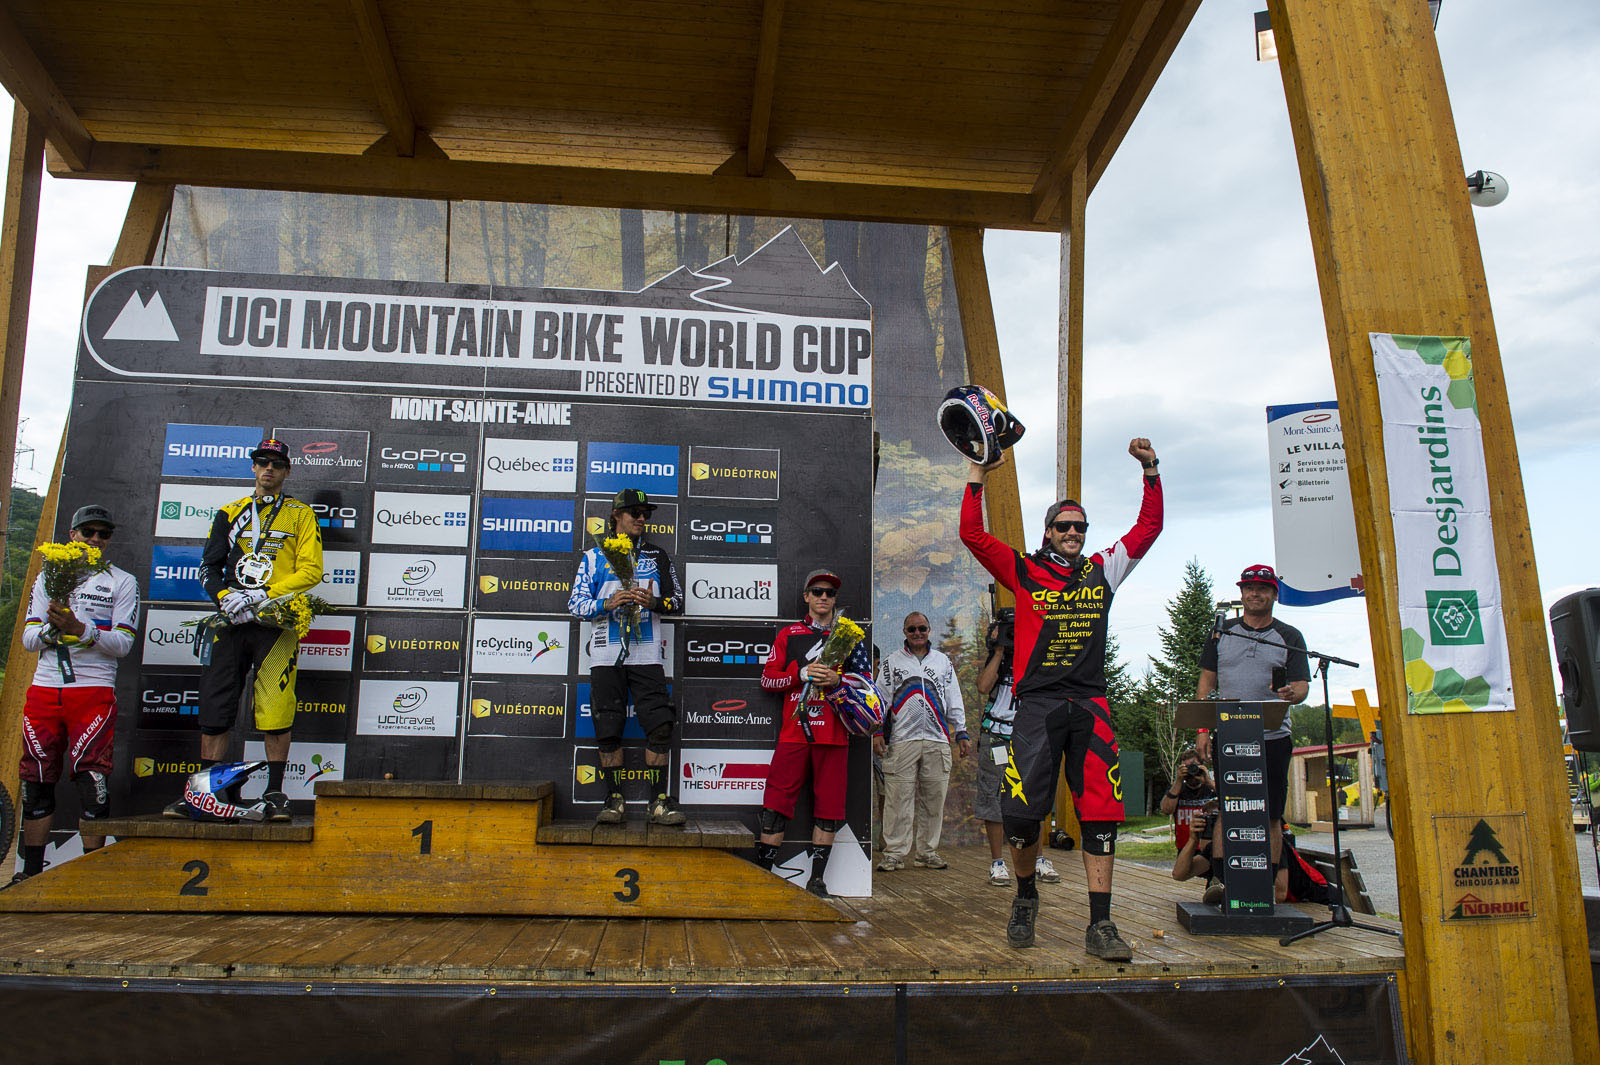 Elite Men s Podium L-R Greg Minnaar 4 Gee Atherton 2 Sam Hill 3 Aaron Gwin 5 --Steve Smith savoring the W on his home soil.